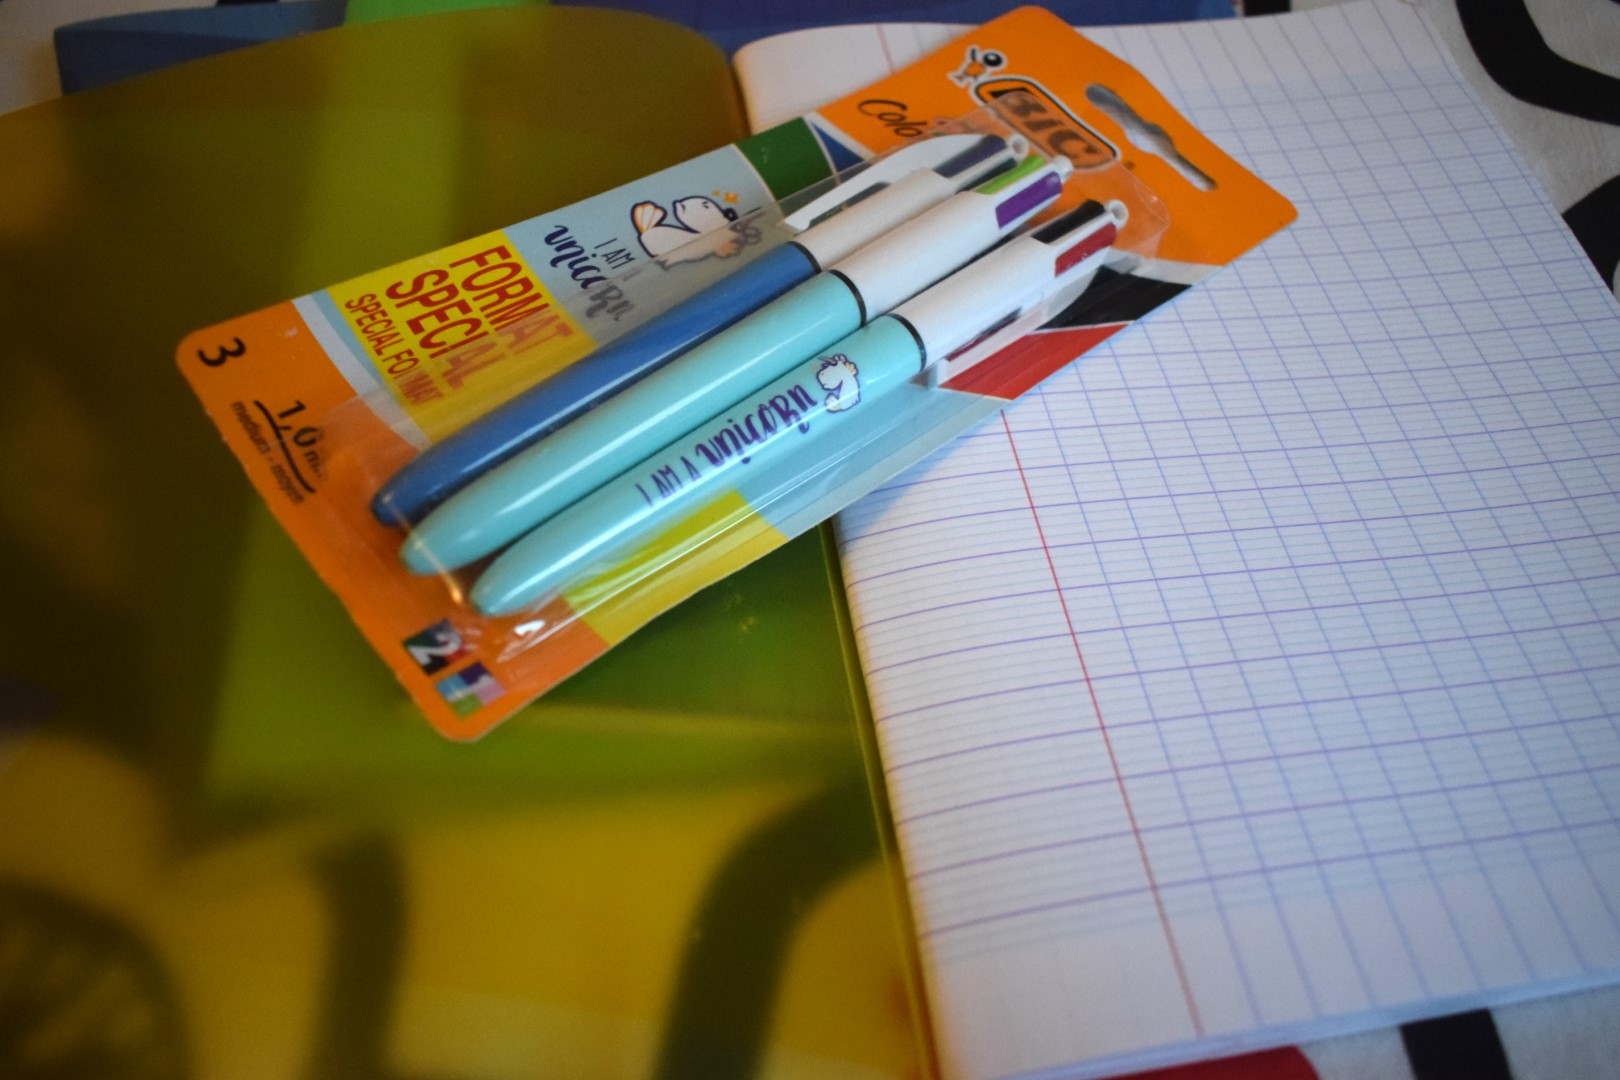 Classic French notebooks and pens